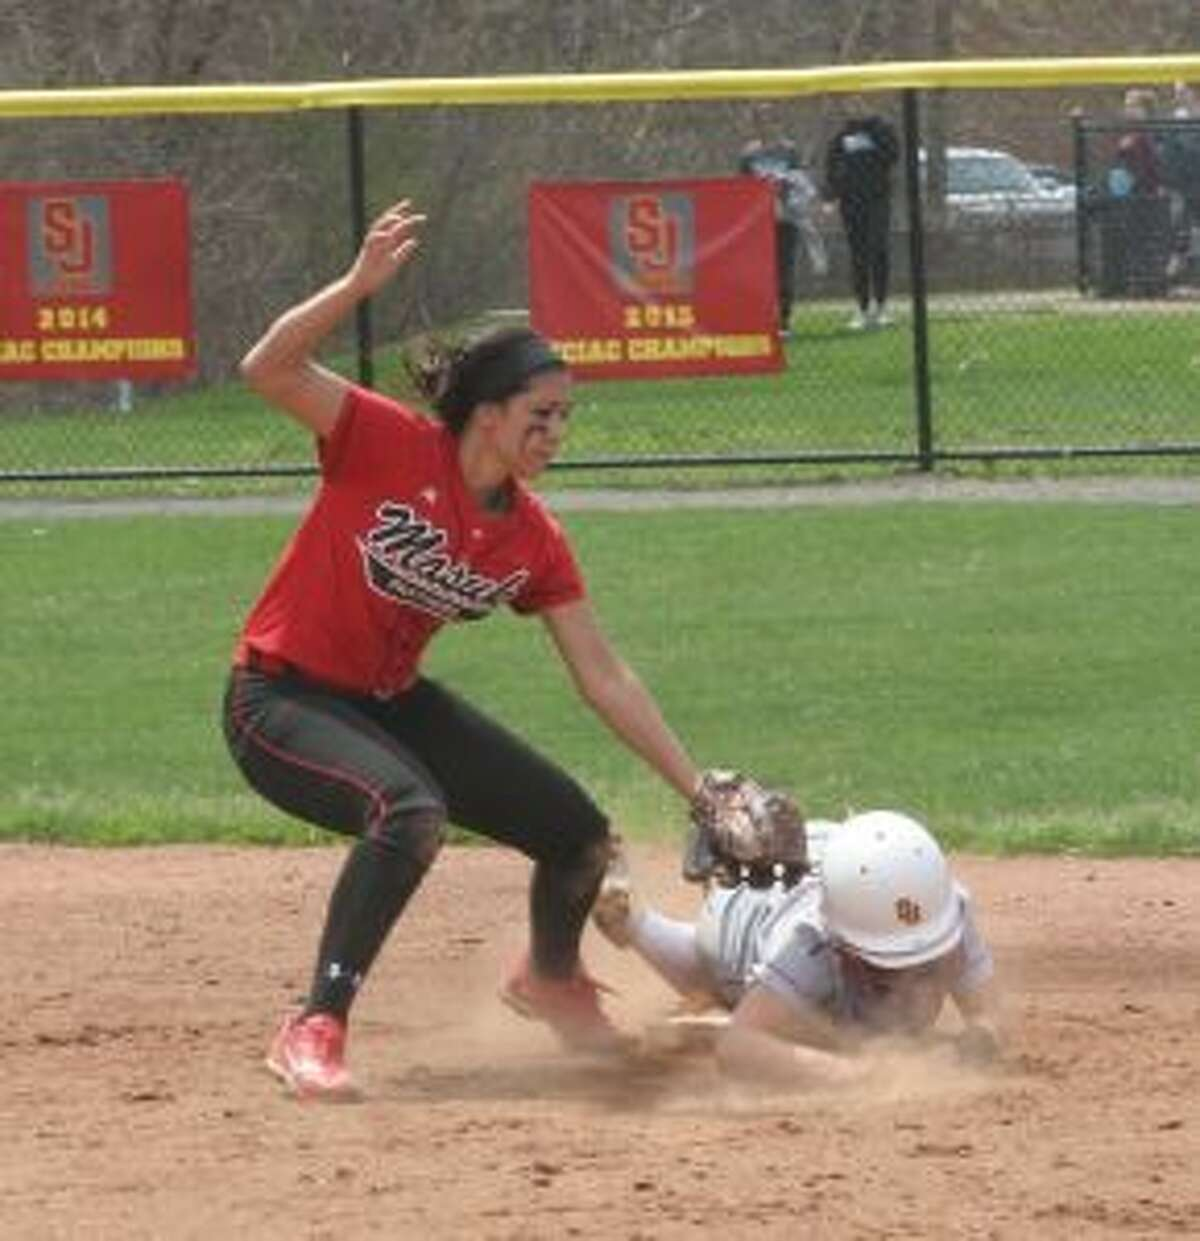 Hanna Errico gets back to the bag after stealing second base.